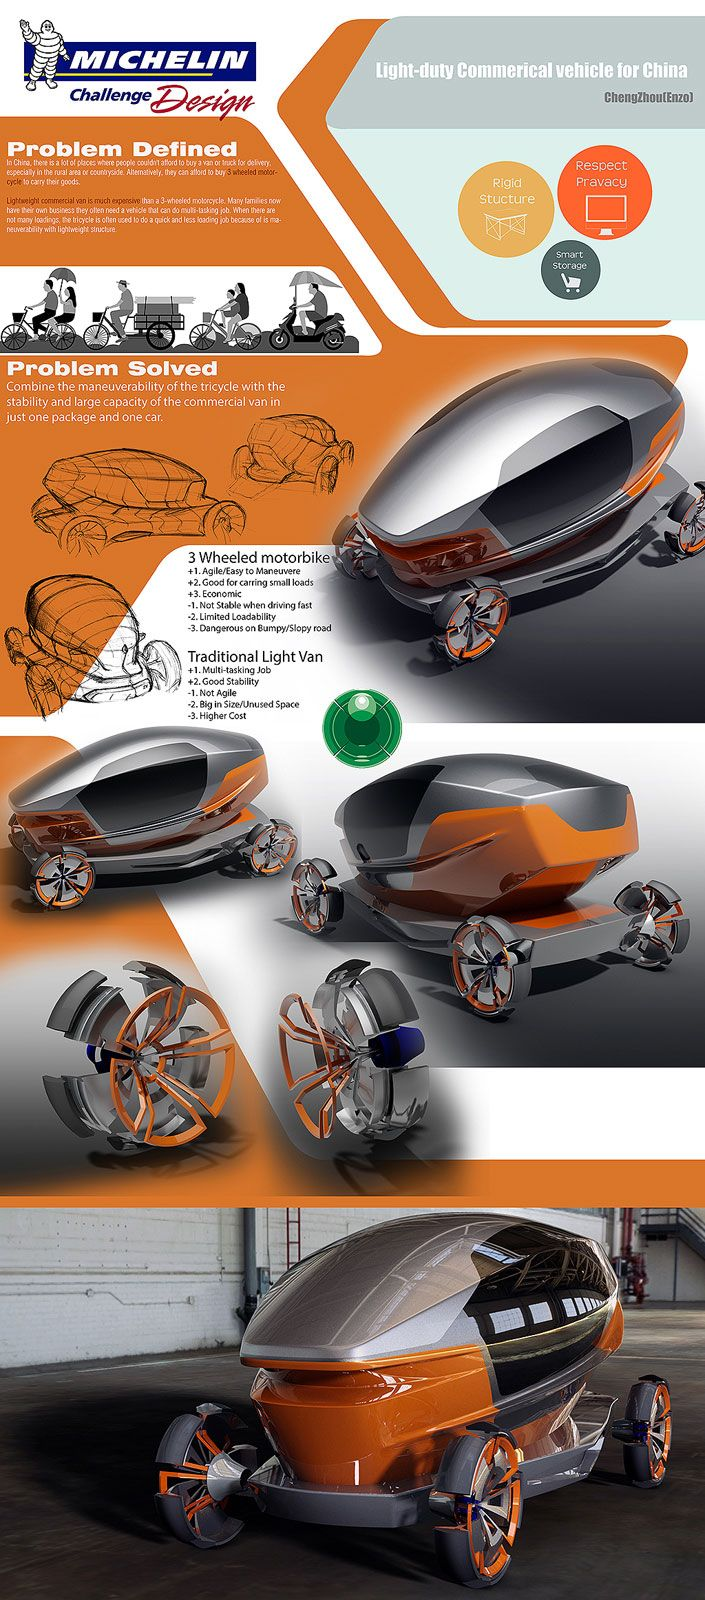 Hub Concept by Eugenio Cheng (Enzo) Zhou - Design Panel